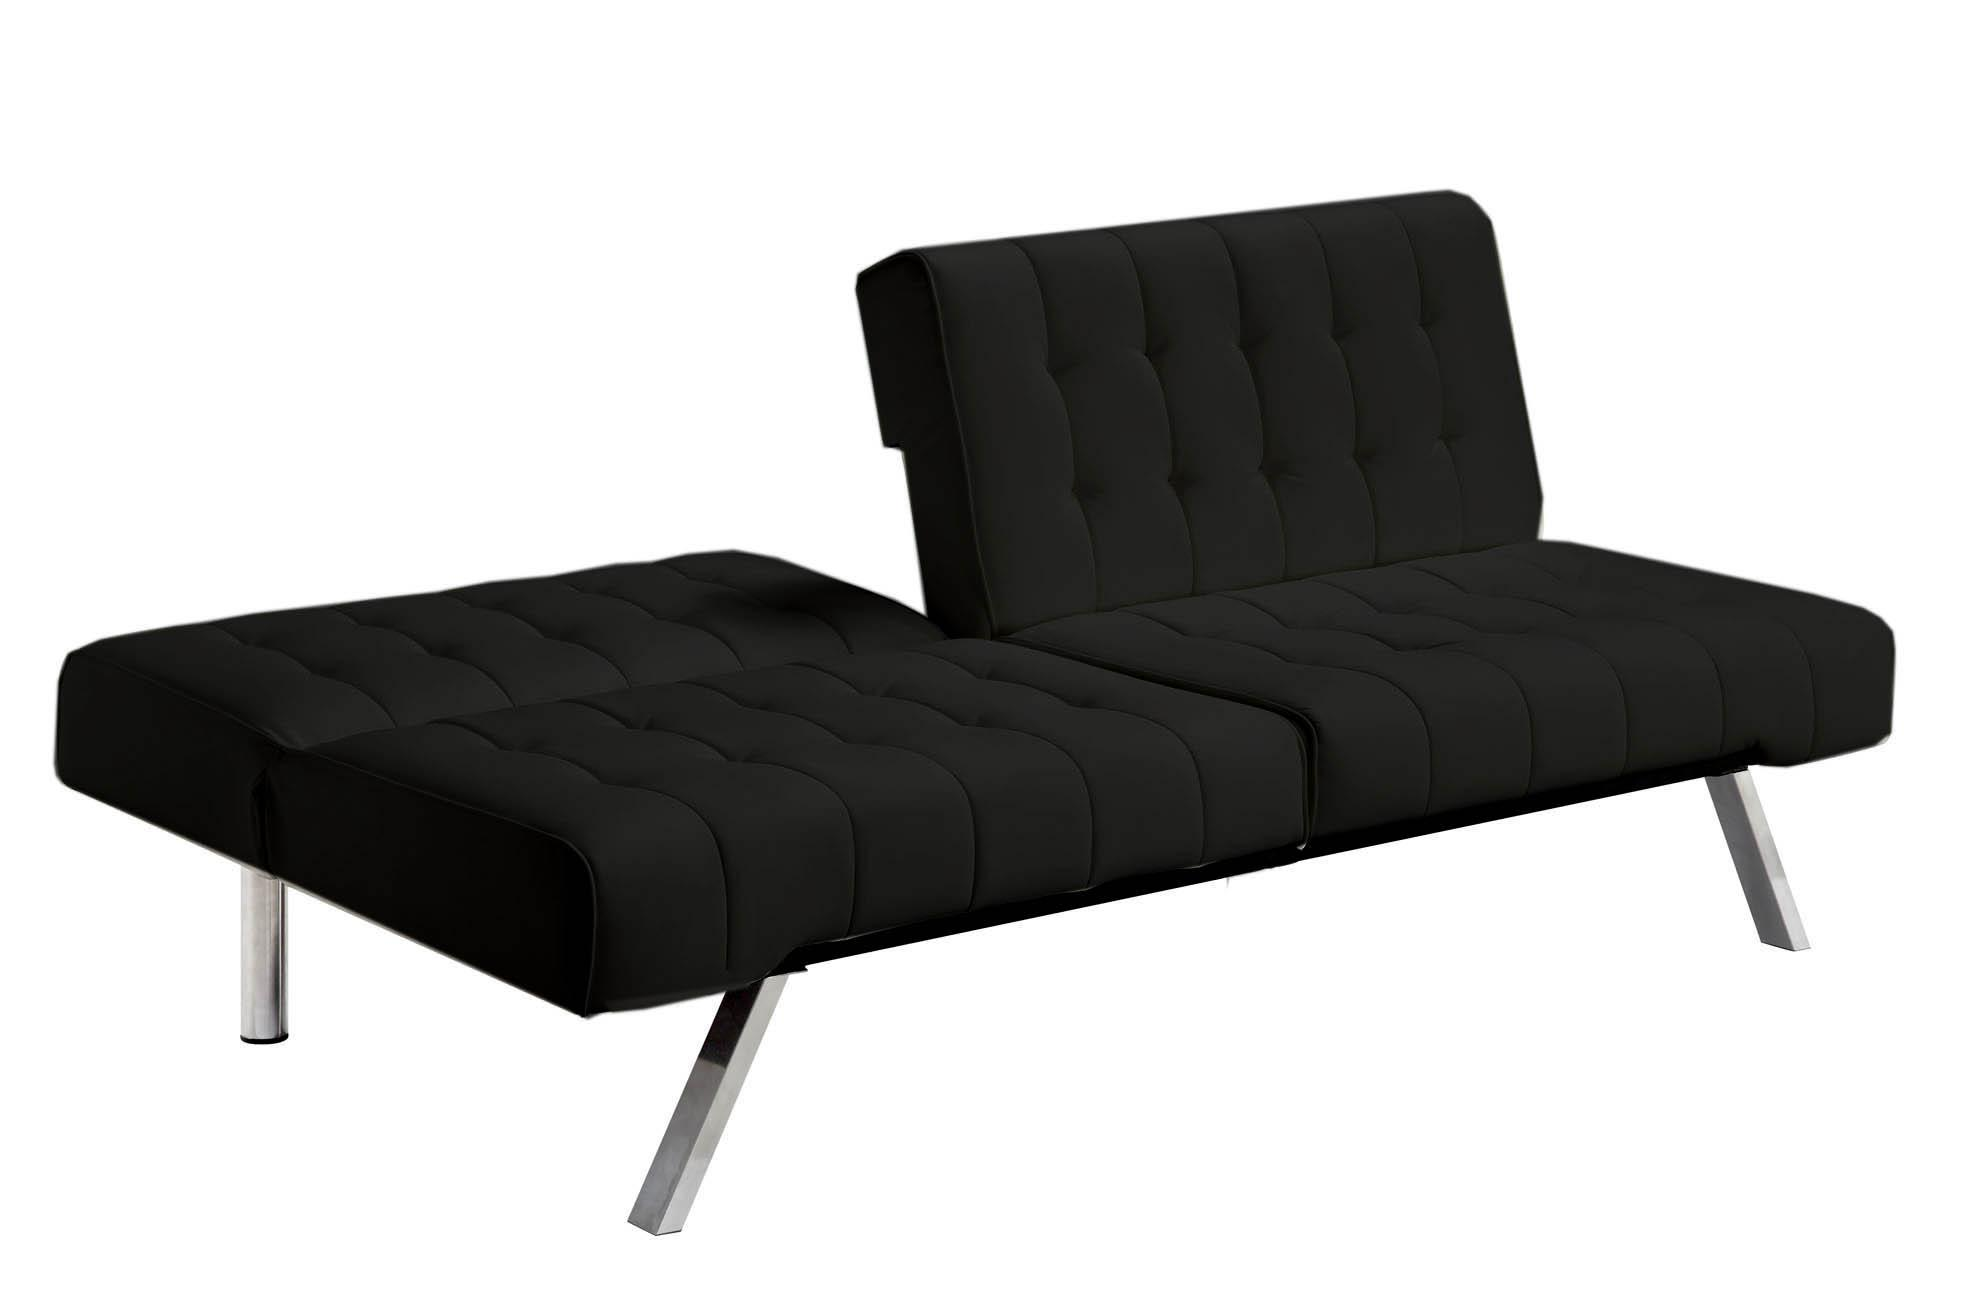 Dorel Emily Convertible Futon By OJ Commerce 27858 36499